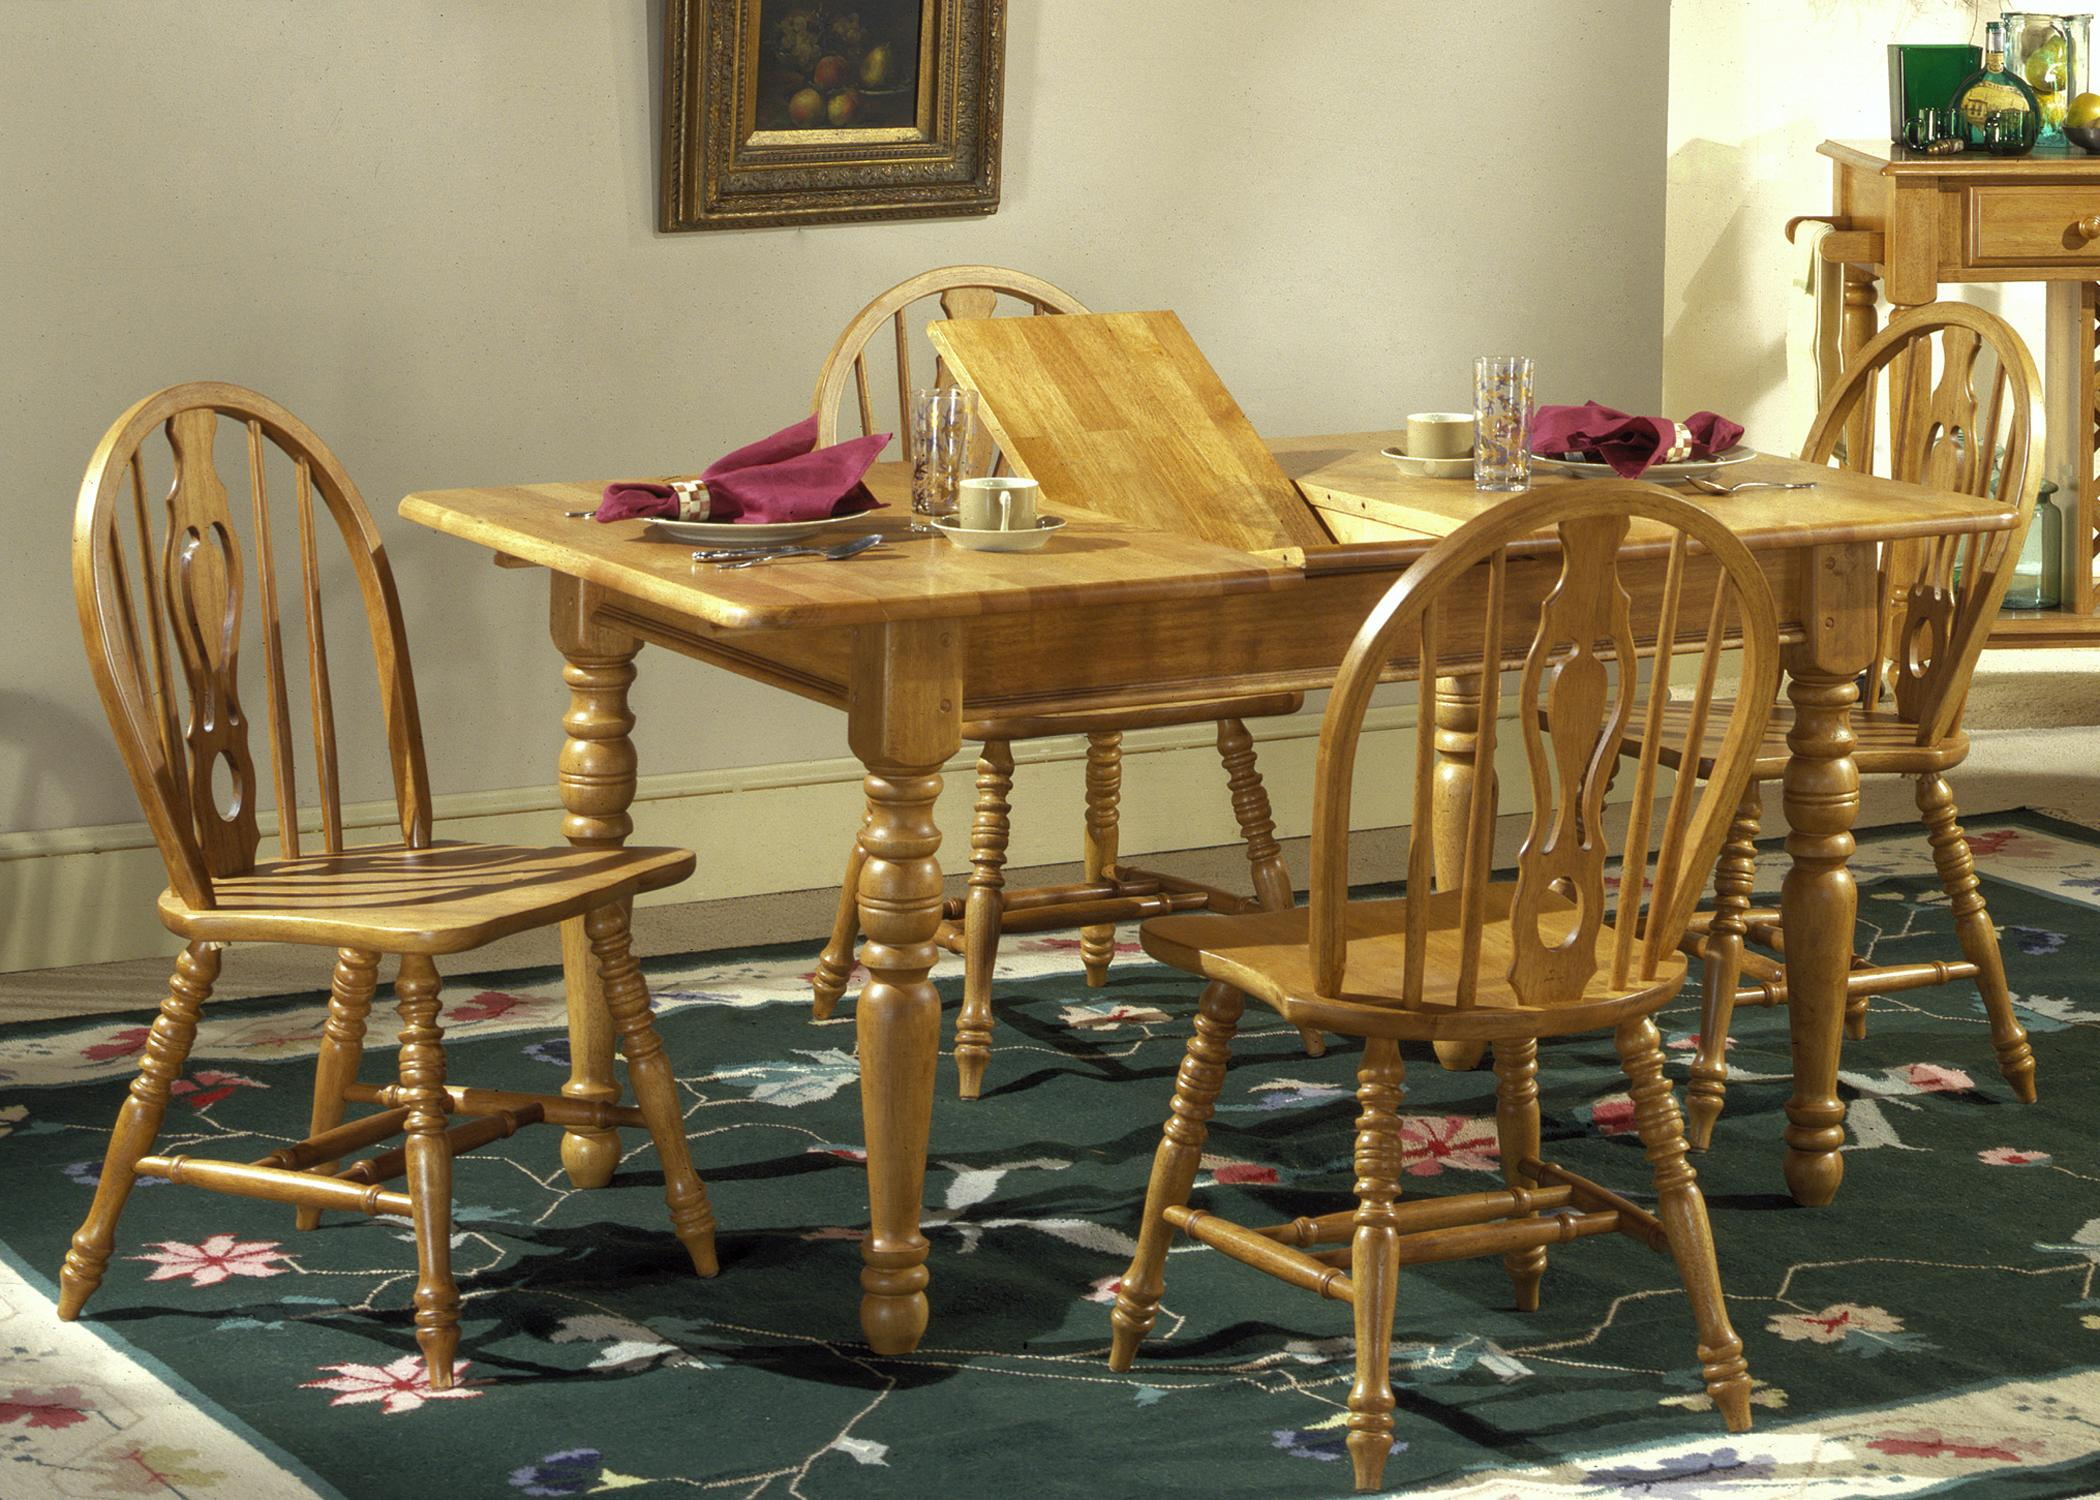 Liberty Furniture Country Haven Five Piece Dining Set - Item Number: 85-T1576+4xC1465S